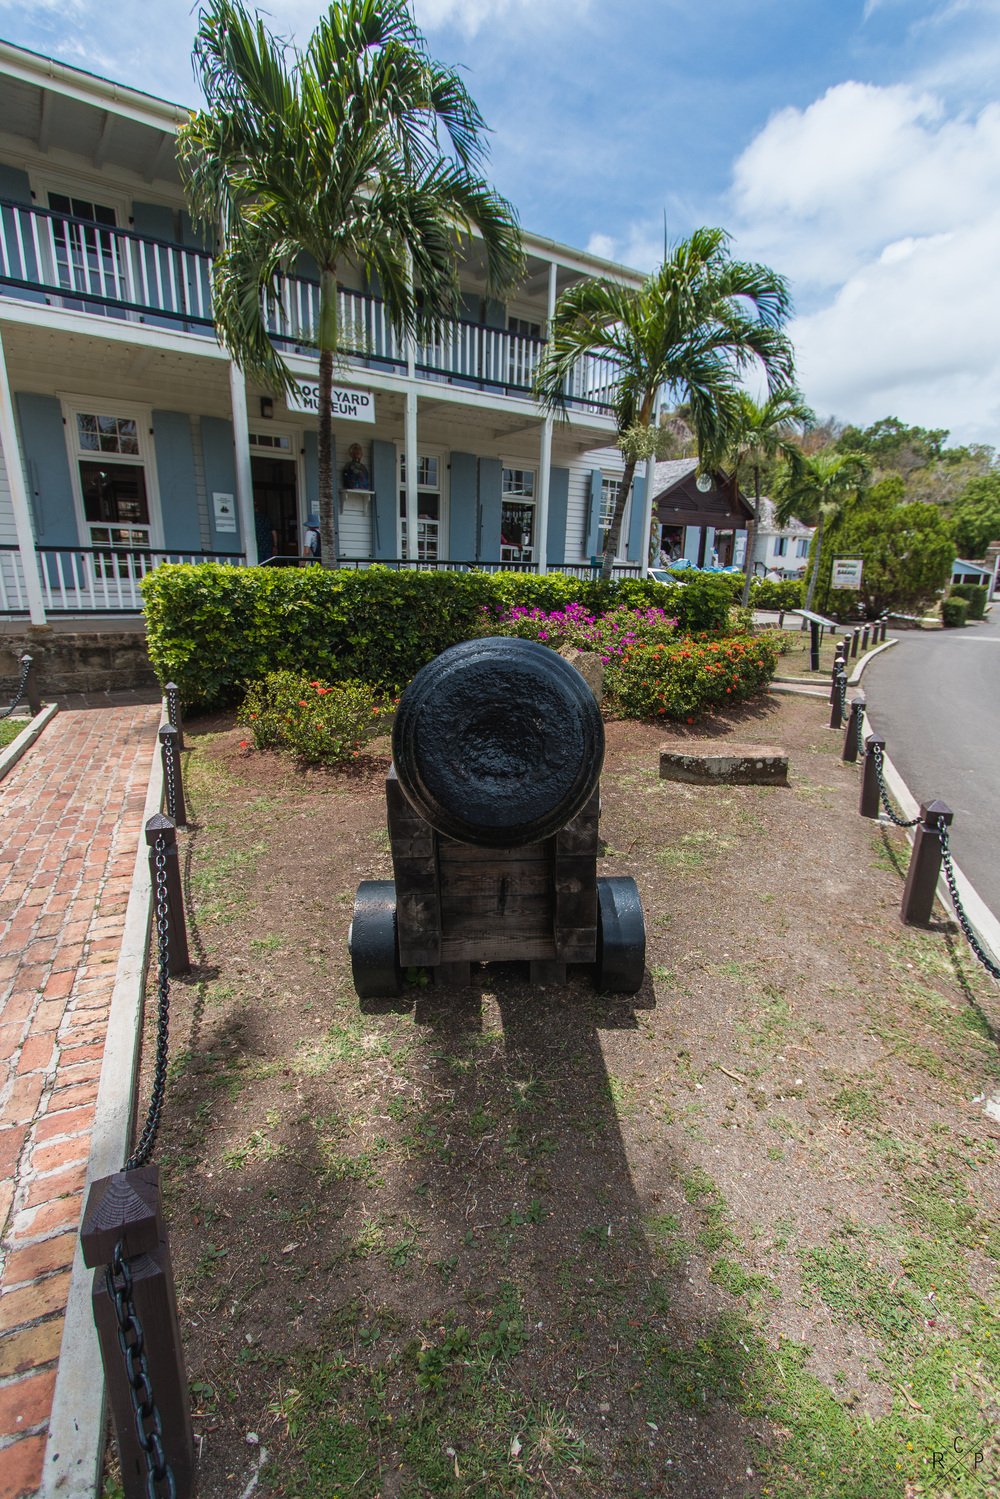 Cannon 3 - Nelson's Dockyard, English Harbour,Antigua 01/04/2016